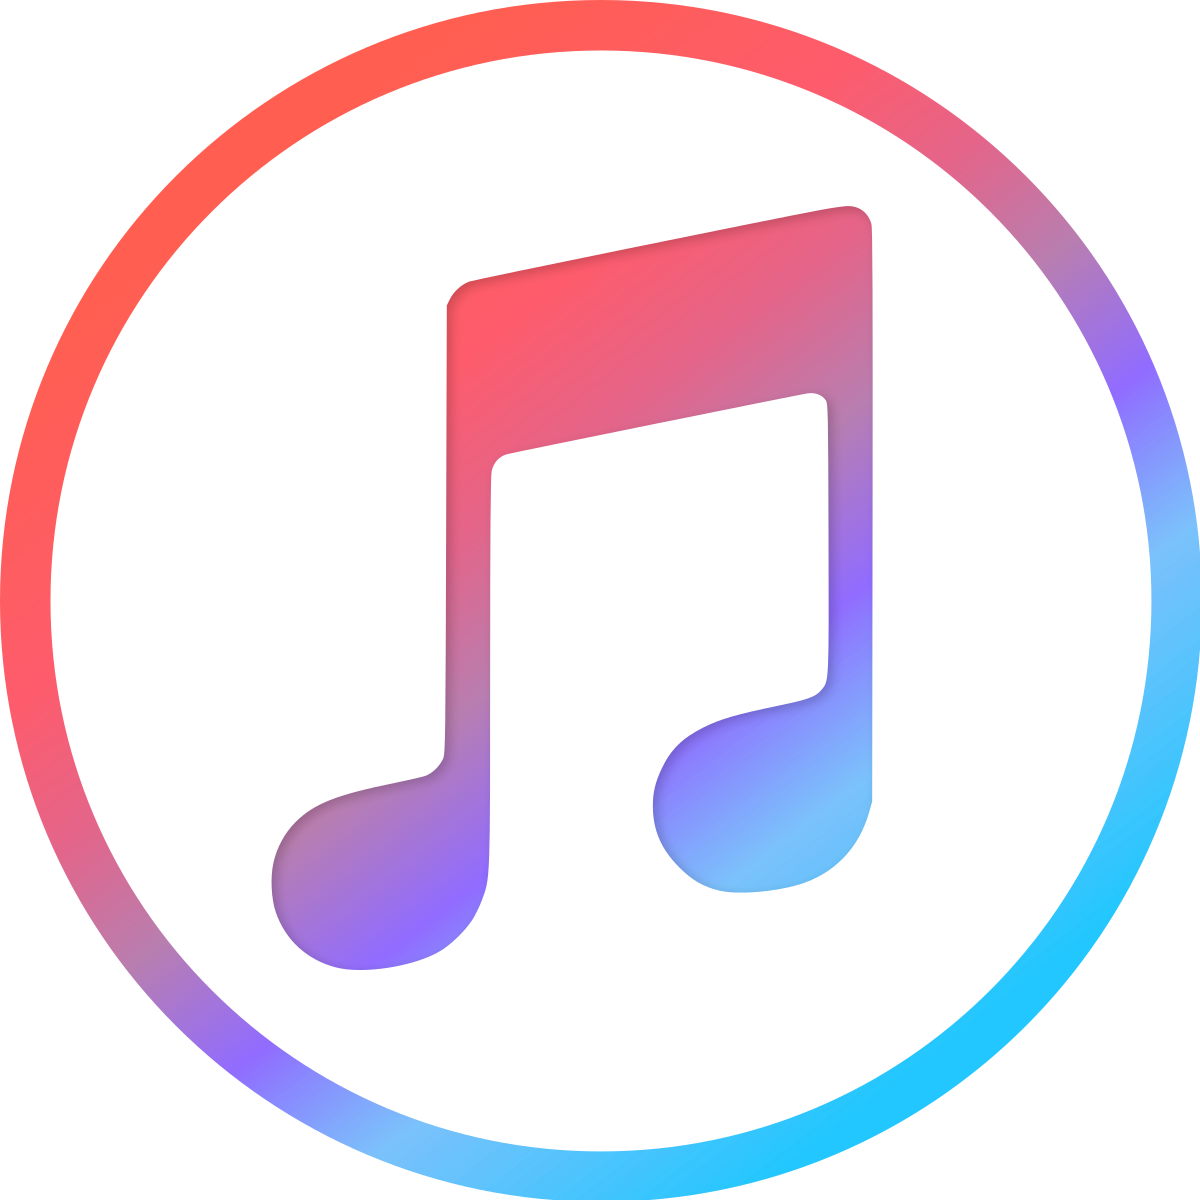 buy on itunes logo png